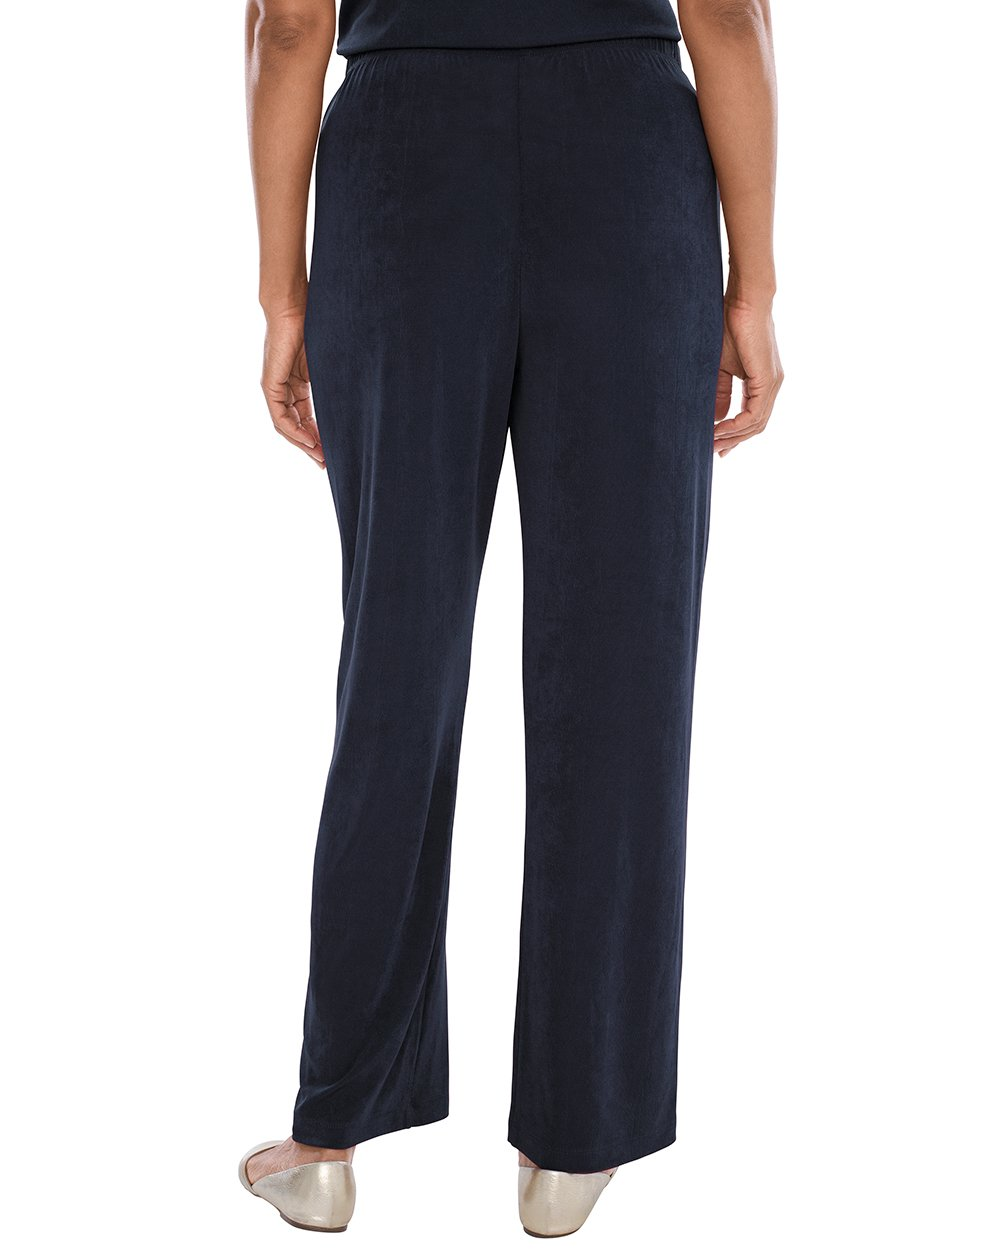 Chico's Women's Travelers Classic No Tummy Pants Size 12/14 L (2) Tall Blue by Chico's (Image #2)